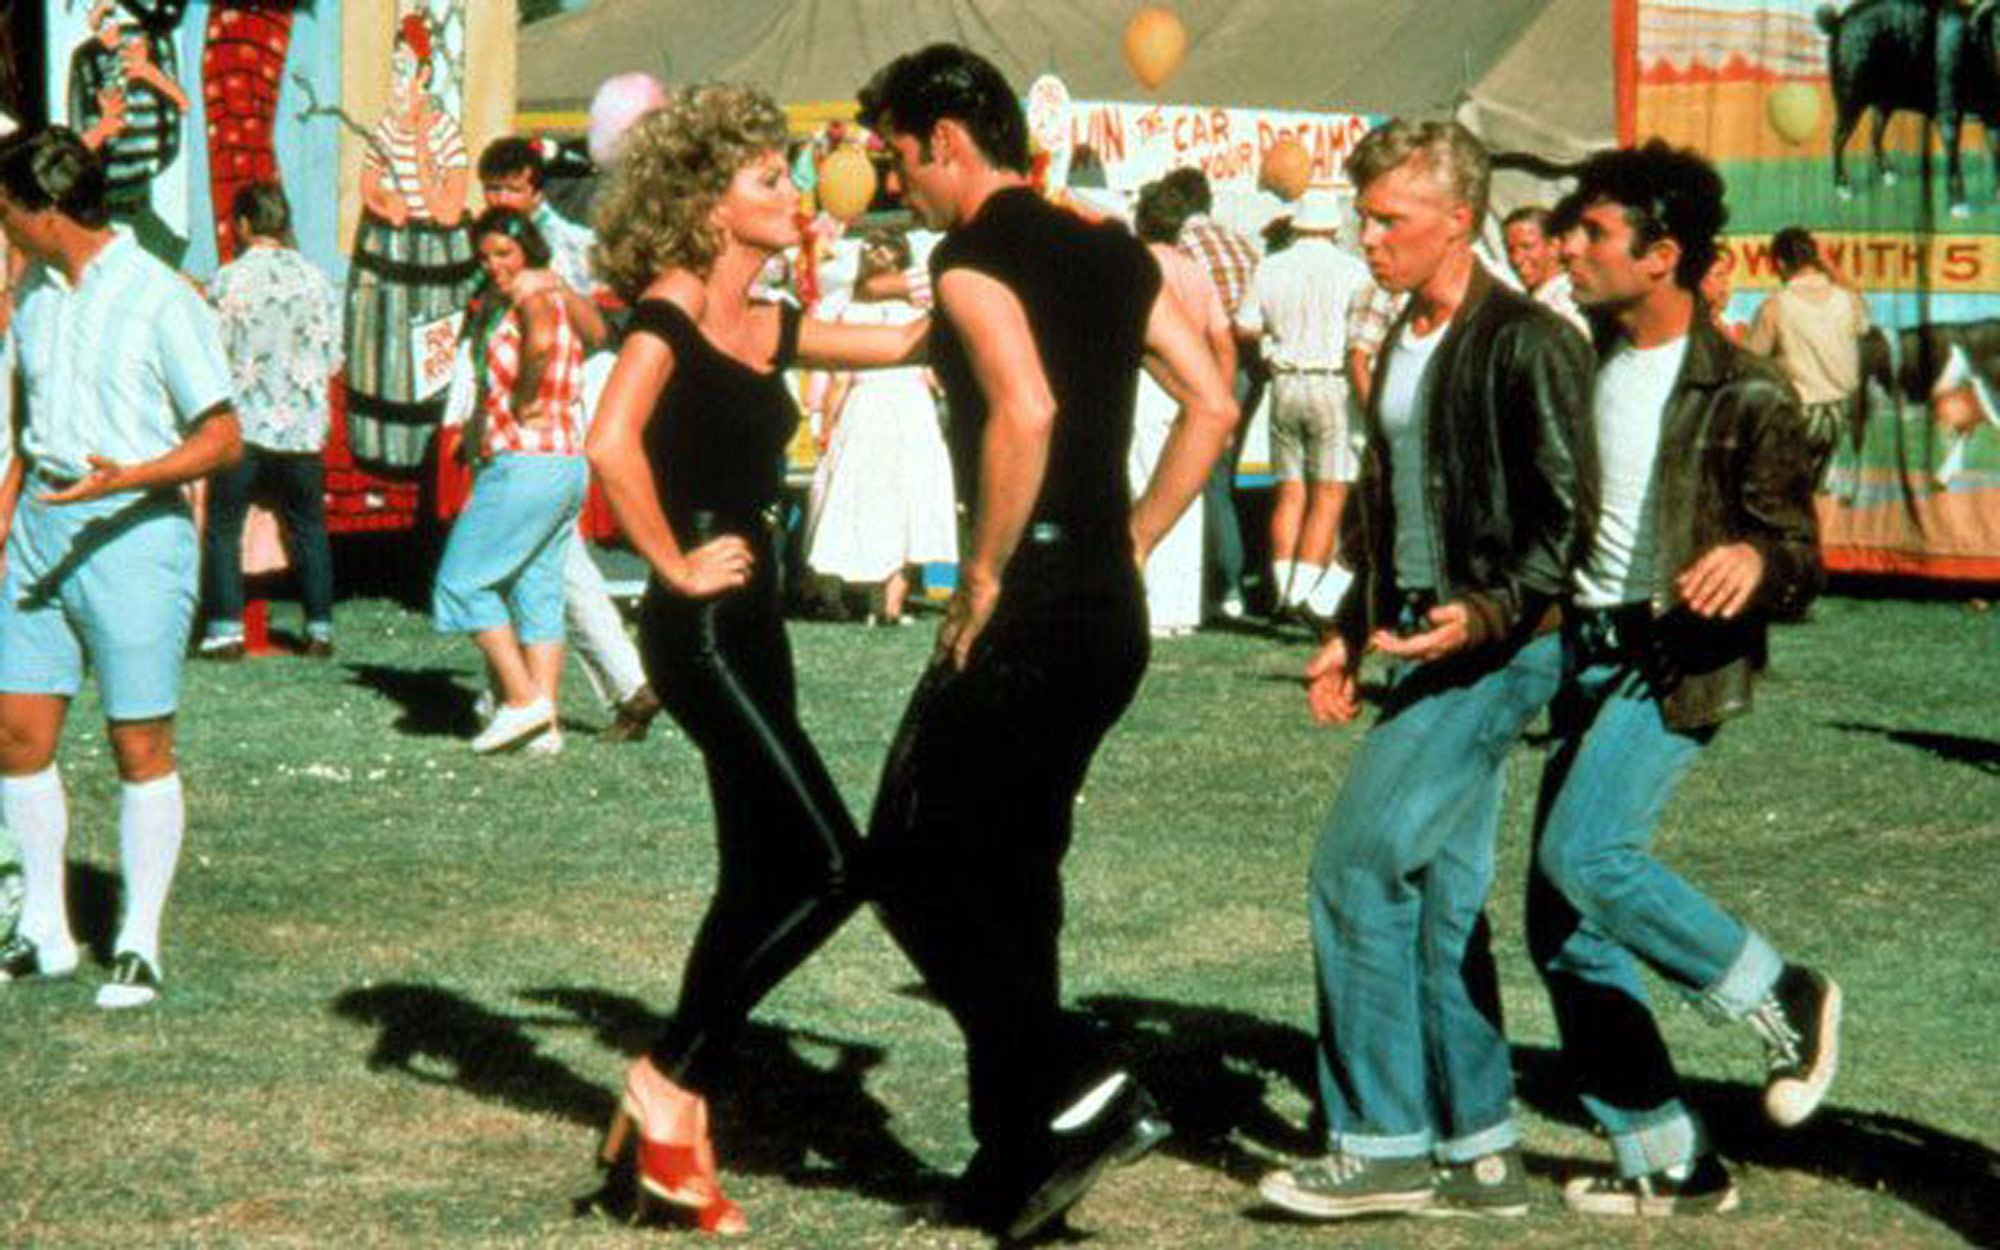 Grease is getting a spin-off TV series